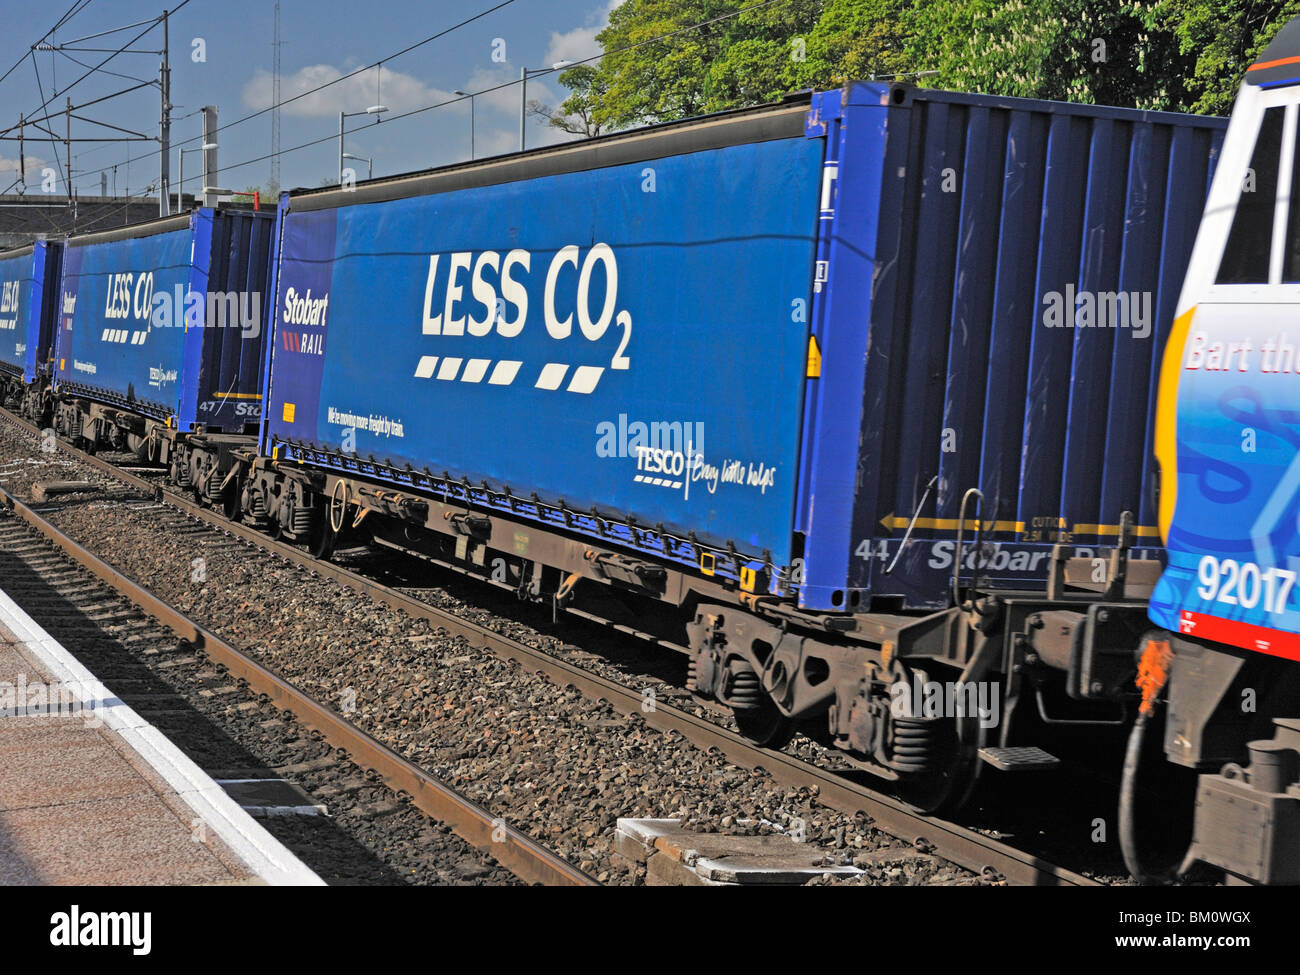 "Stobart Rail locomotive No. 92017 ""Bart the Engine"" hauling Tesco Less CO2 freight. West Coast Main Line. Oxenholme, Stock Photo"